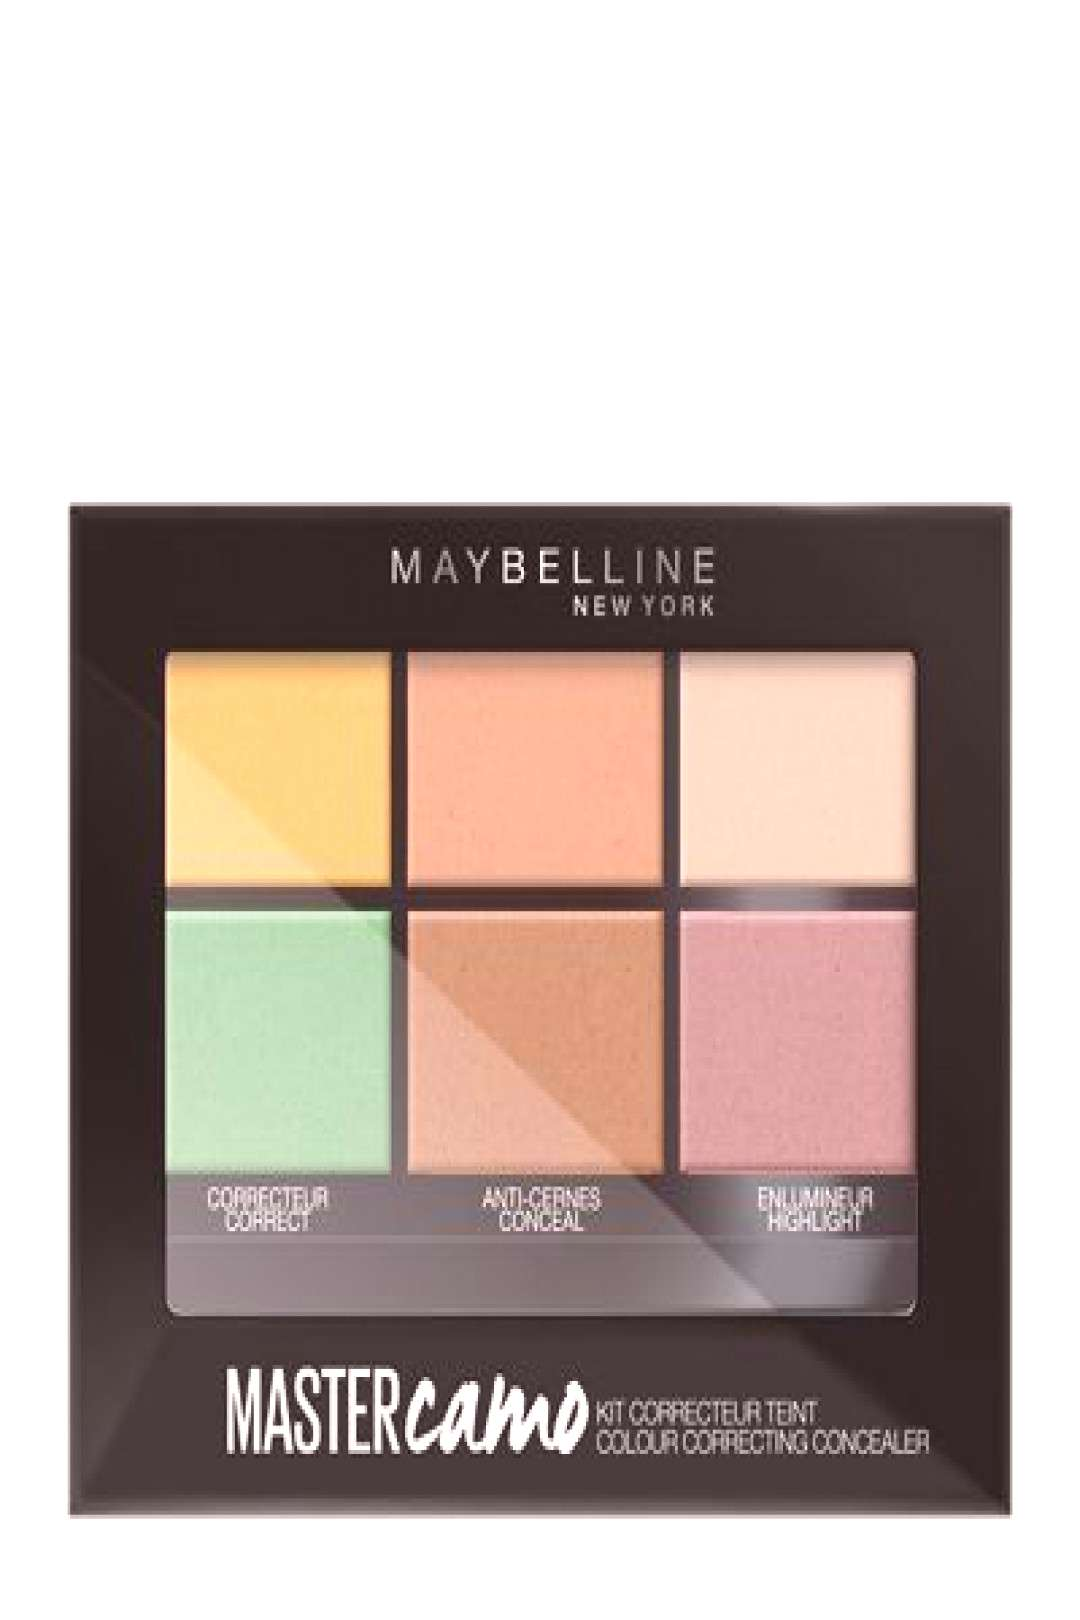 Maybelline Master Camo Color Correcting Concealer Kit 6g 01 Light#camo